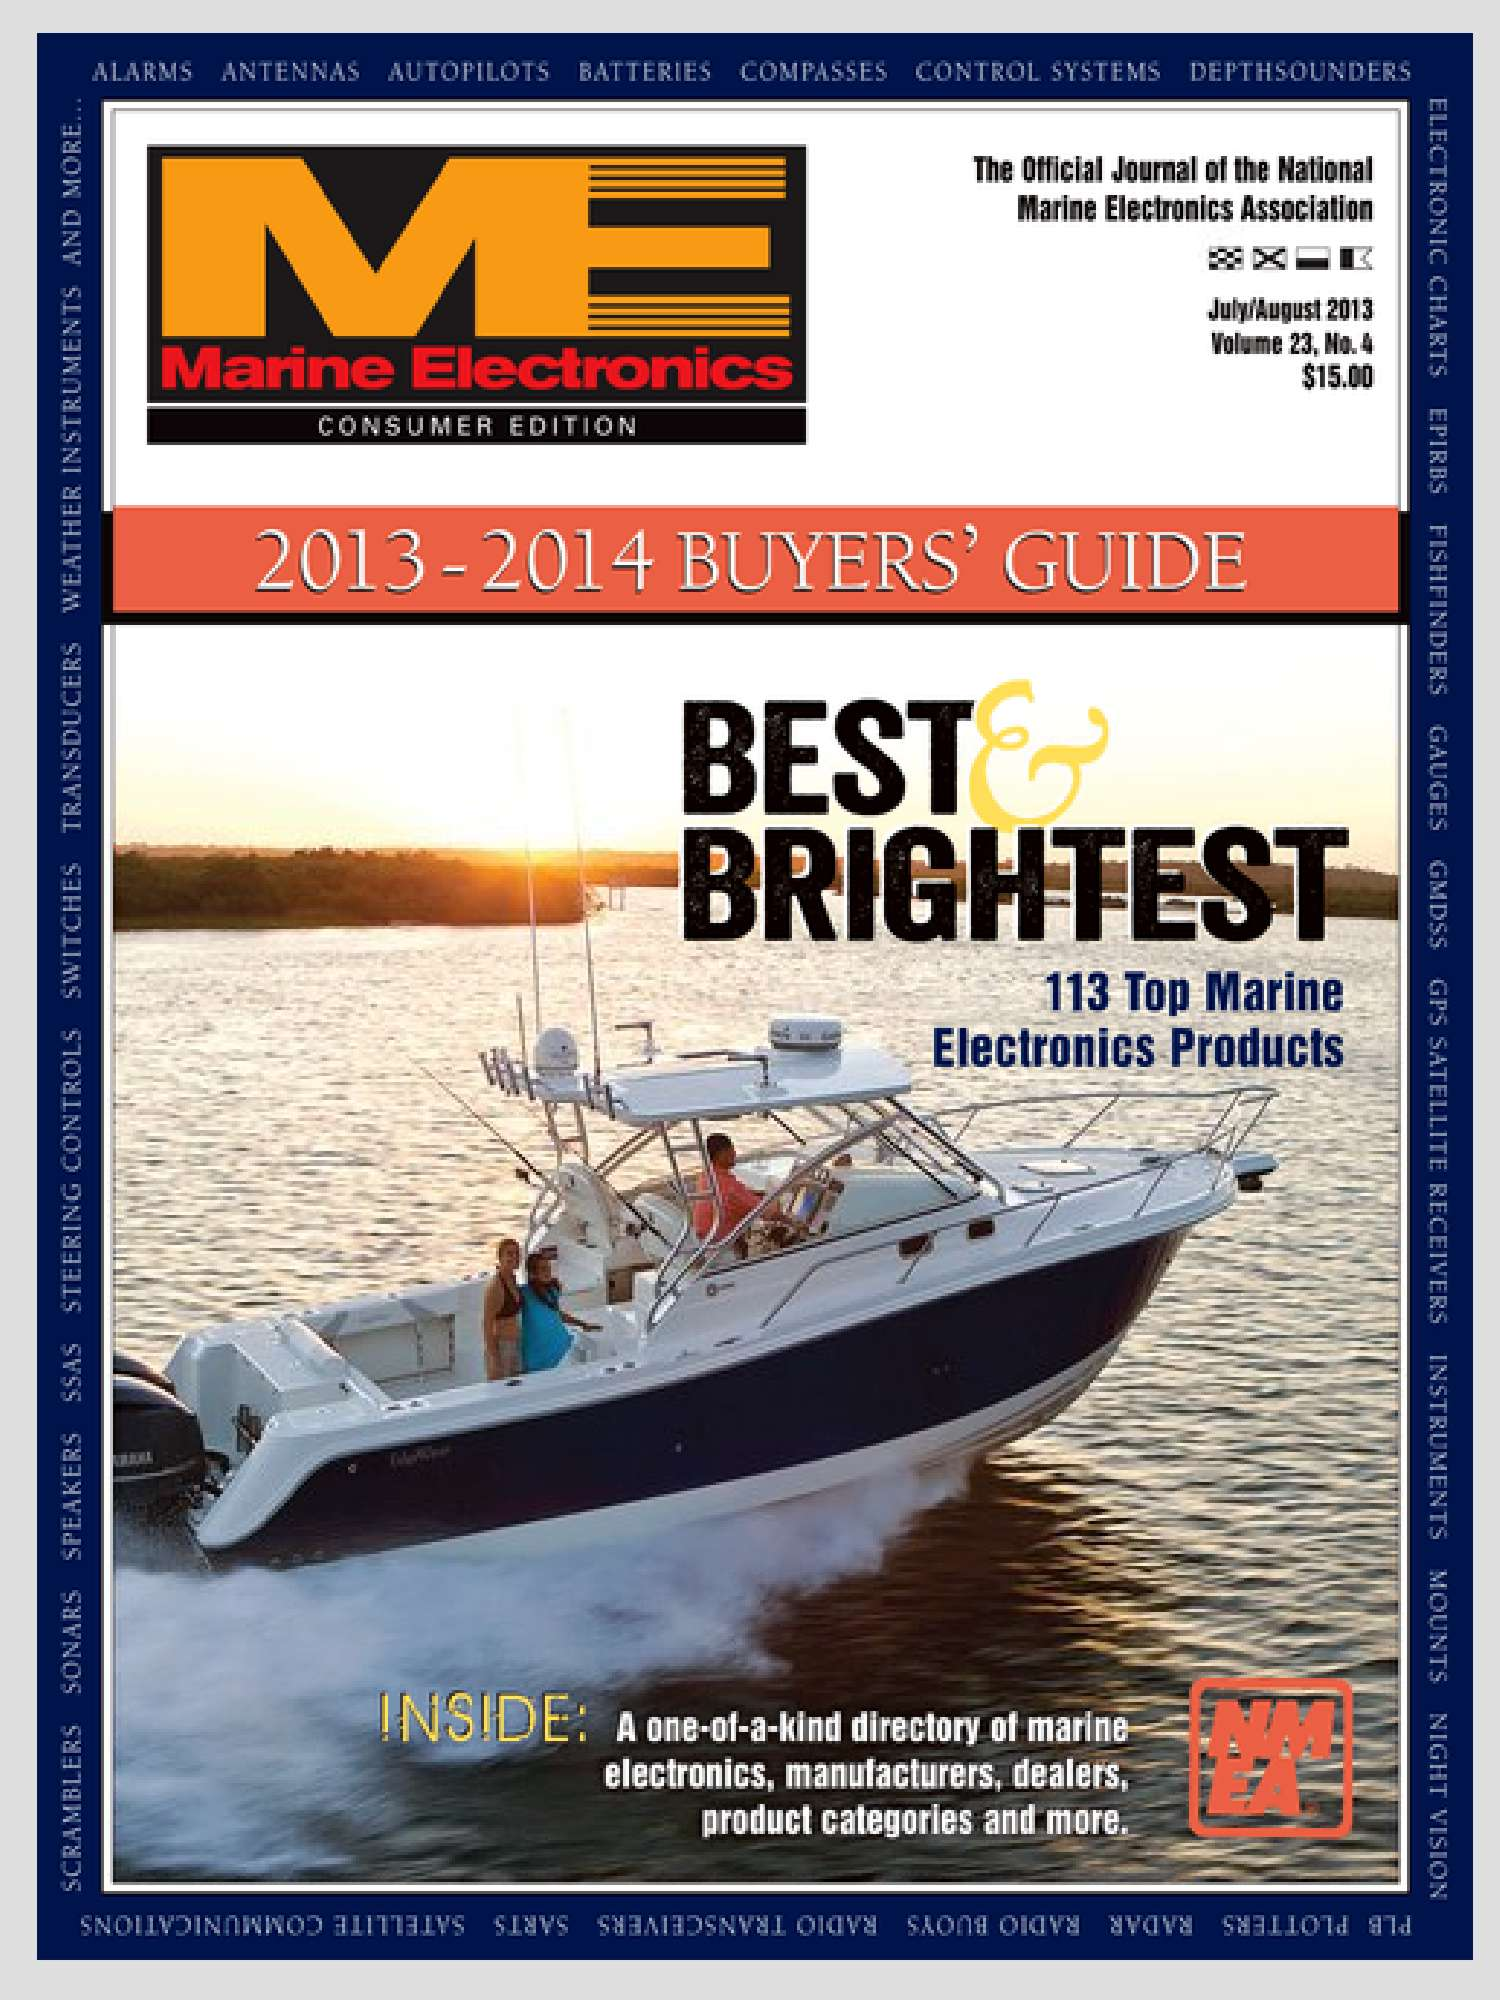 Marine Electronic's Journal - Now On Line - Digital Yacht News